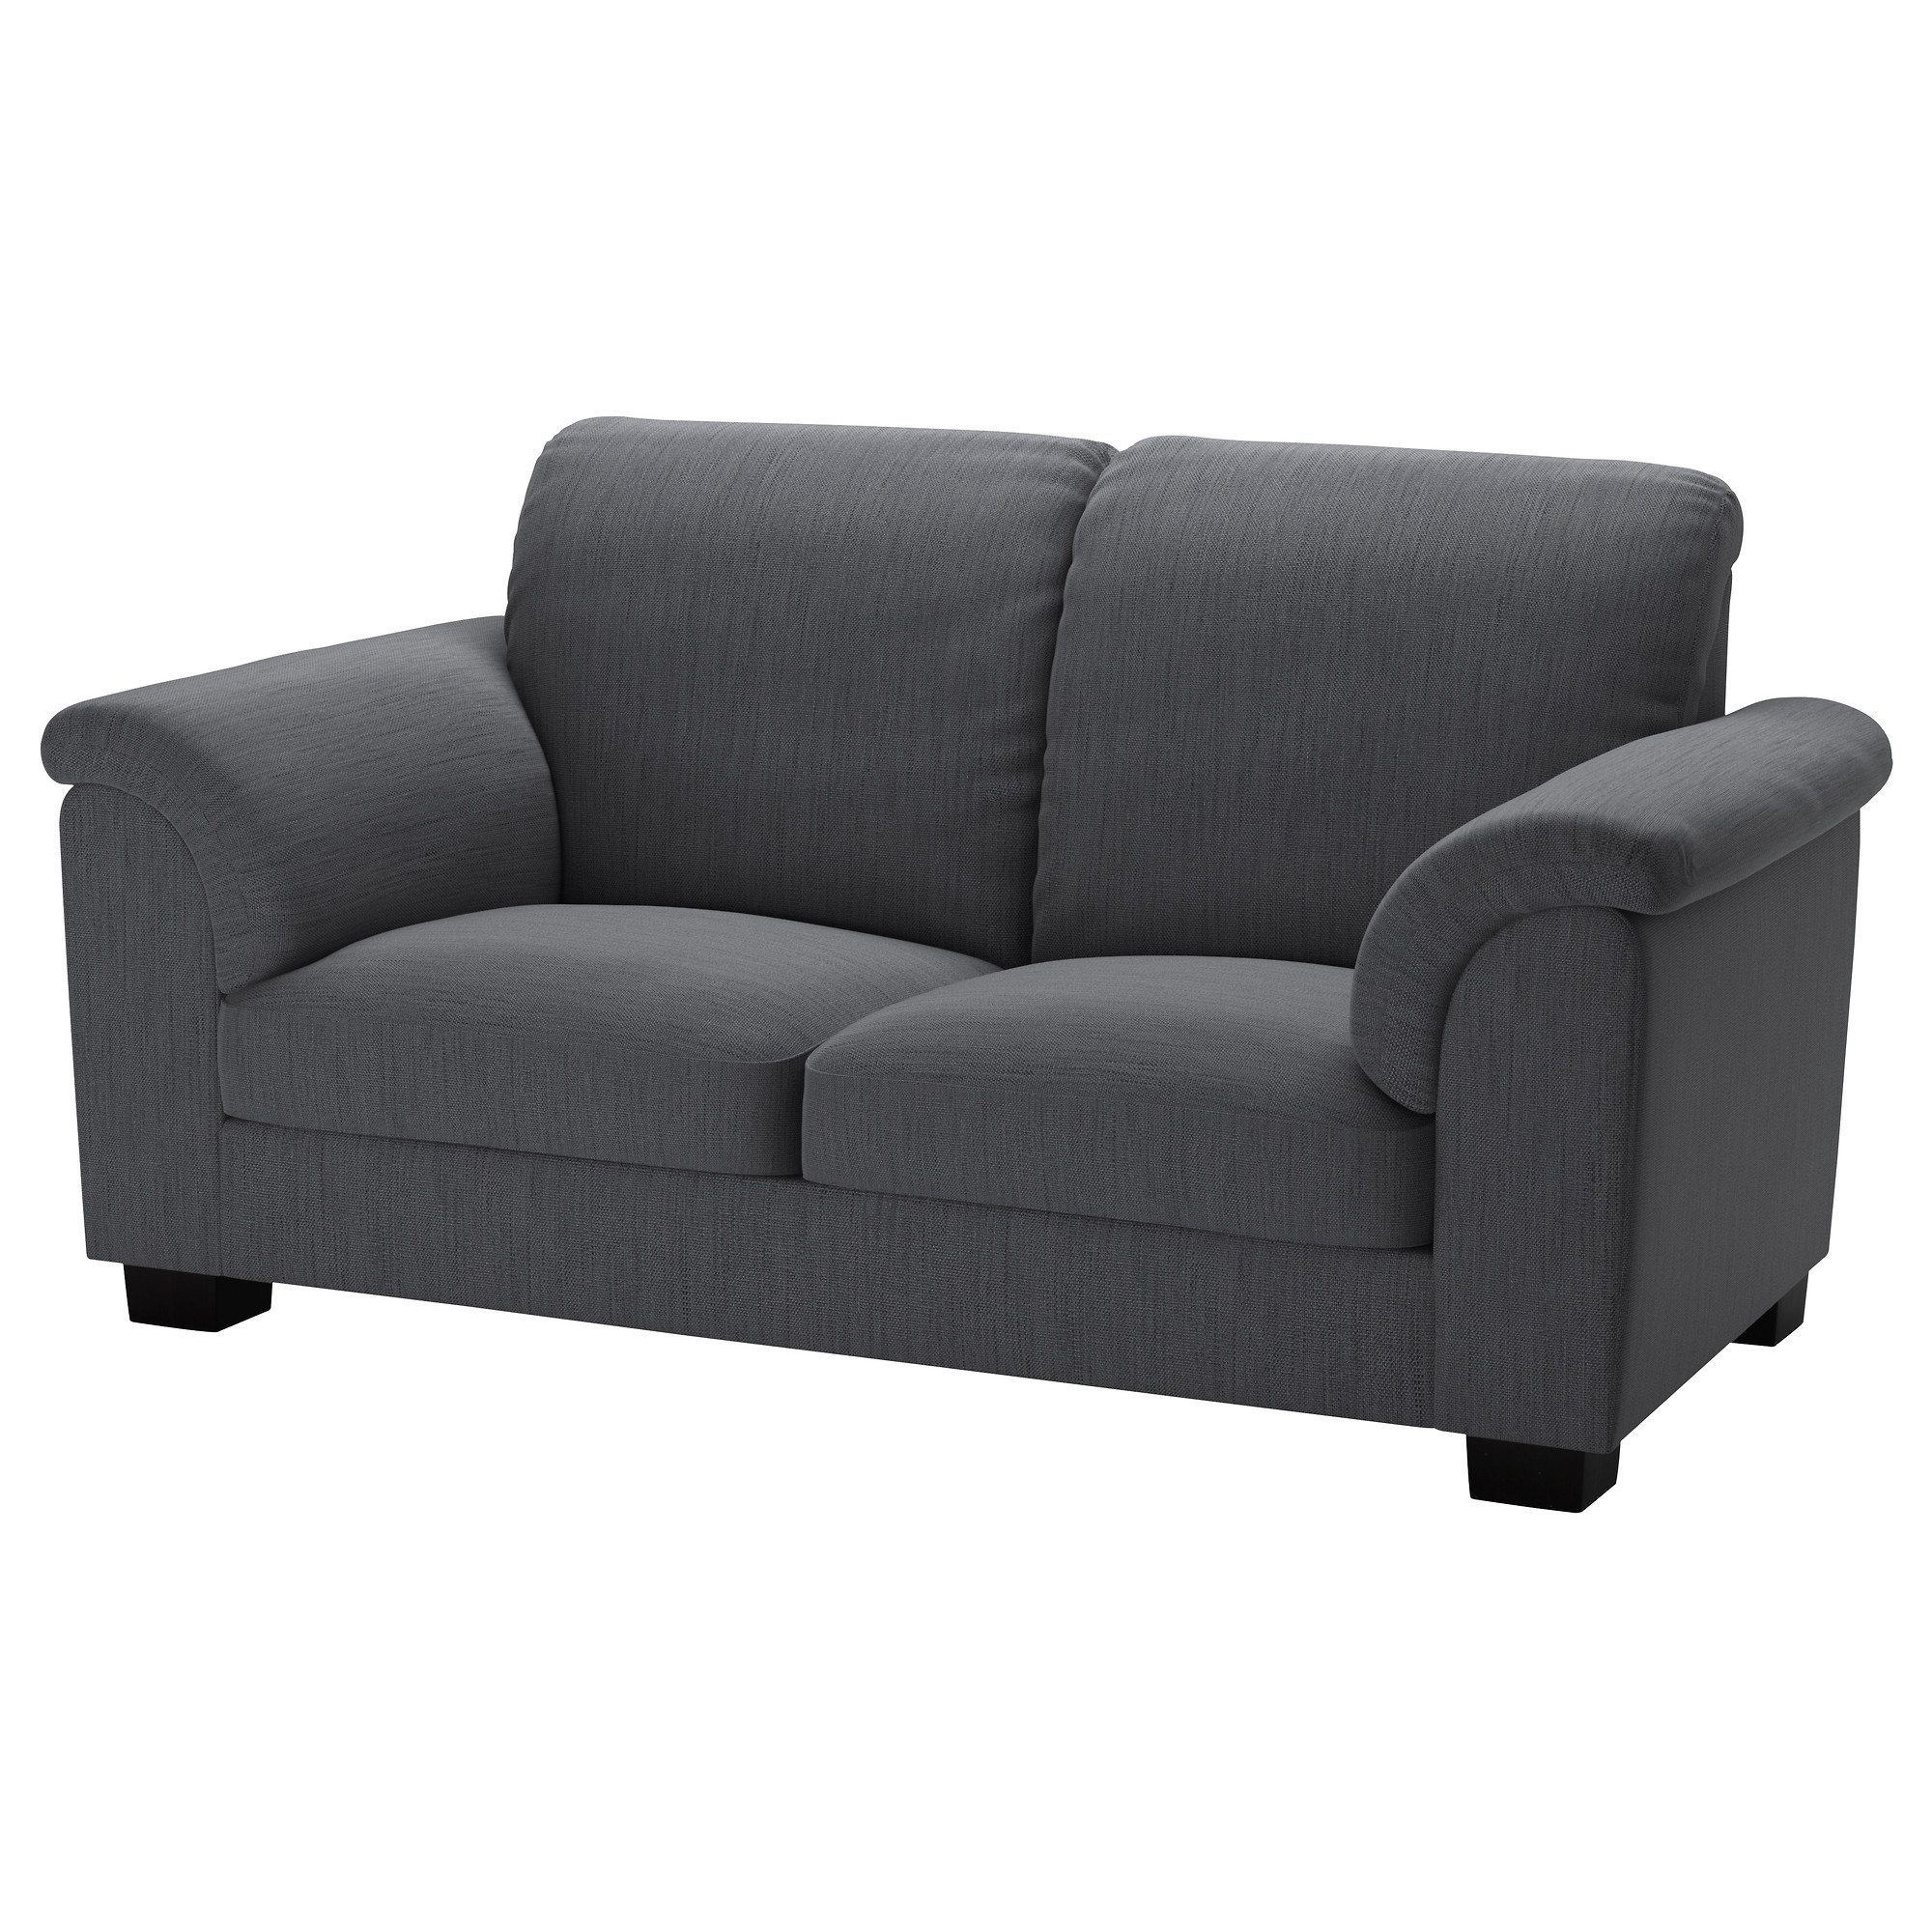 2 person sofa 2 seater sofa epic as chaise for small for Couch with 2 chaises